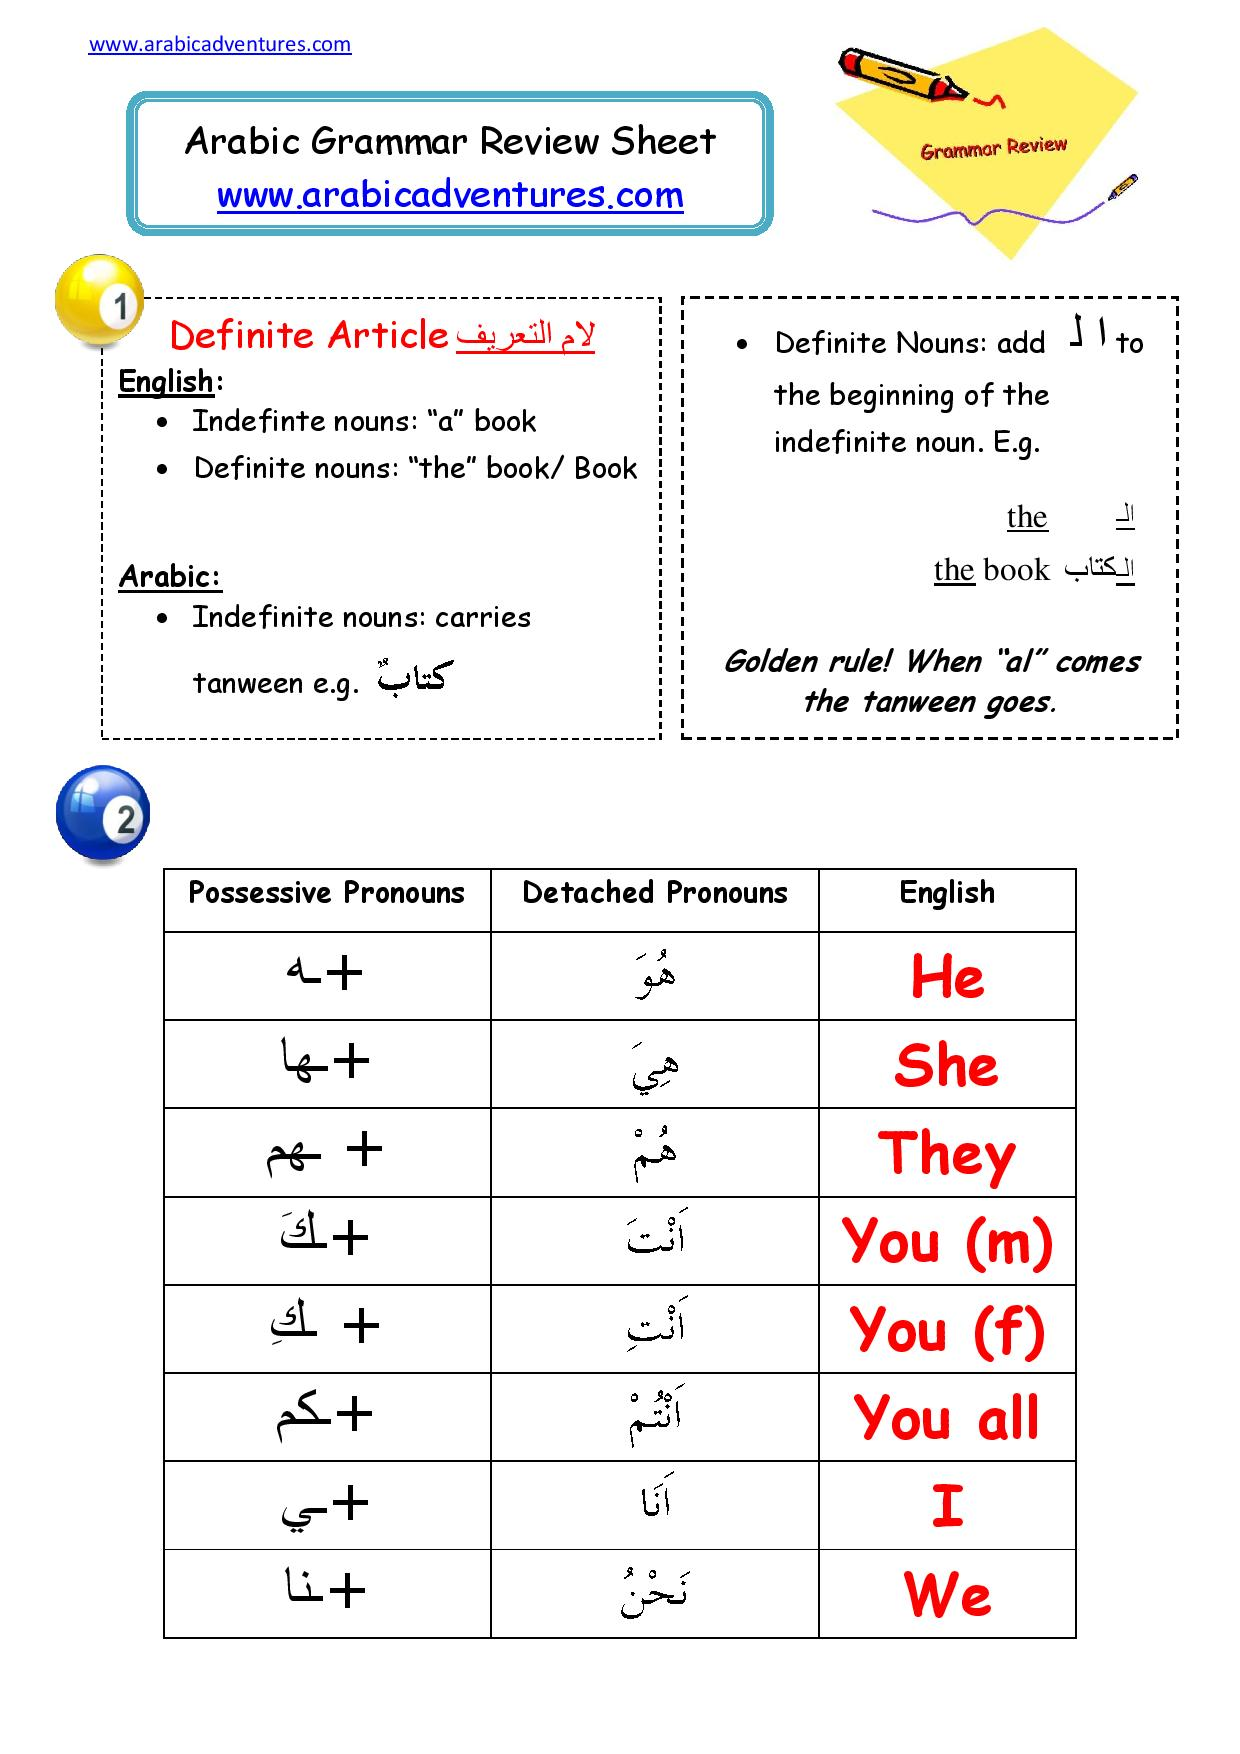 arabic grammar review sheet arabic adventures. Black Bedroom Furniture Sets. Home Design Ideas